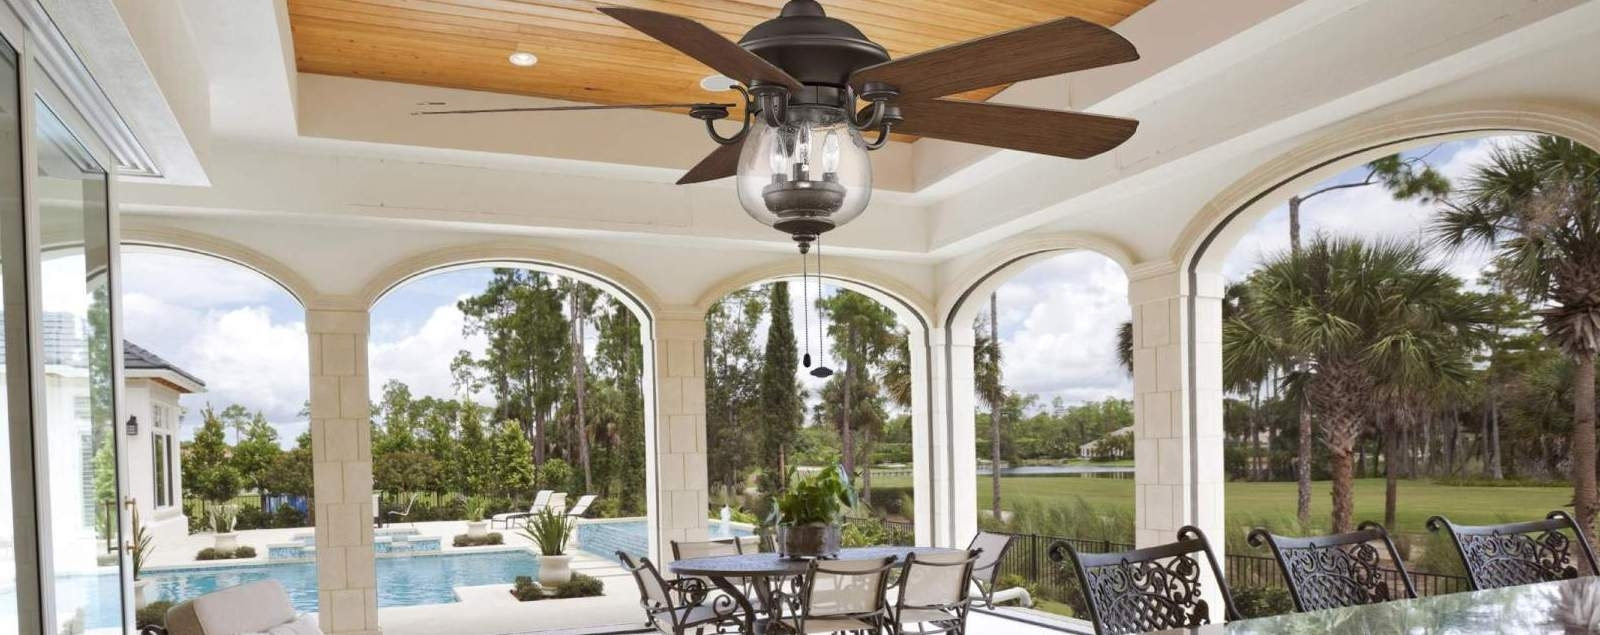 Outdoor Ceiling Fans – Choose Wet Rated Or Damp Rated For Your Space! With Regard To Outdoor Ceiling Fans With Damp Rated Lights (#9 of 15)